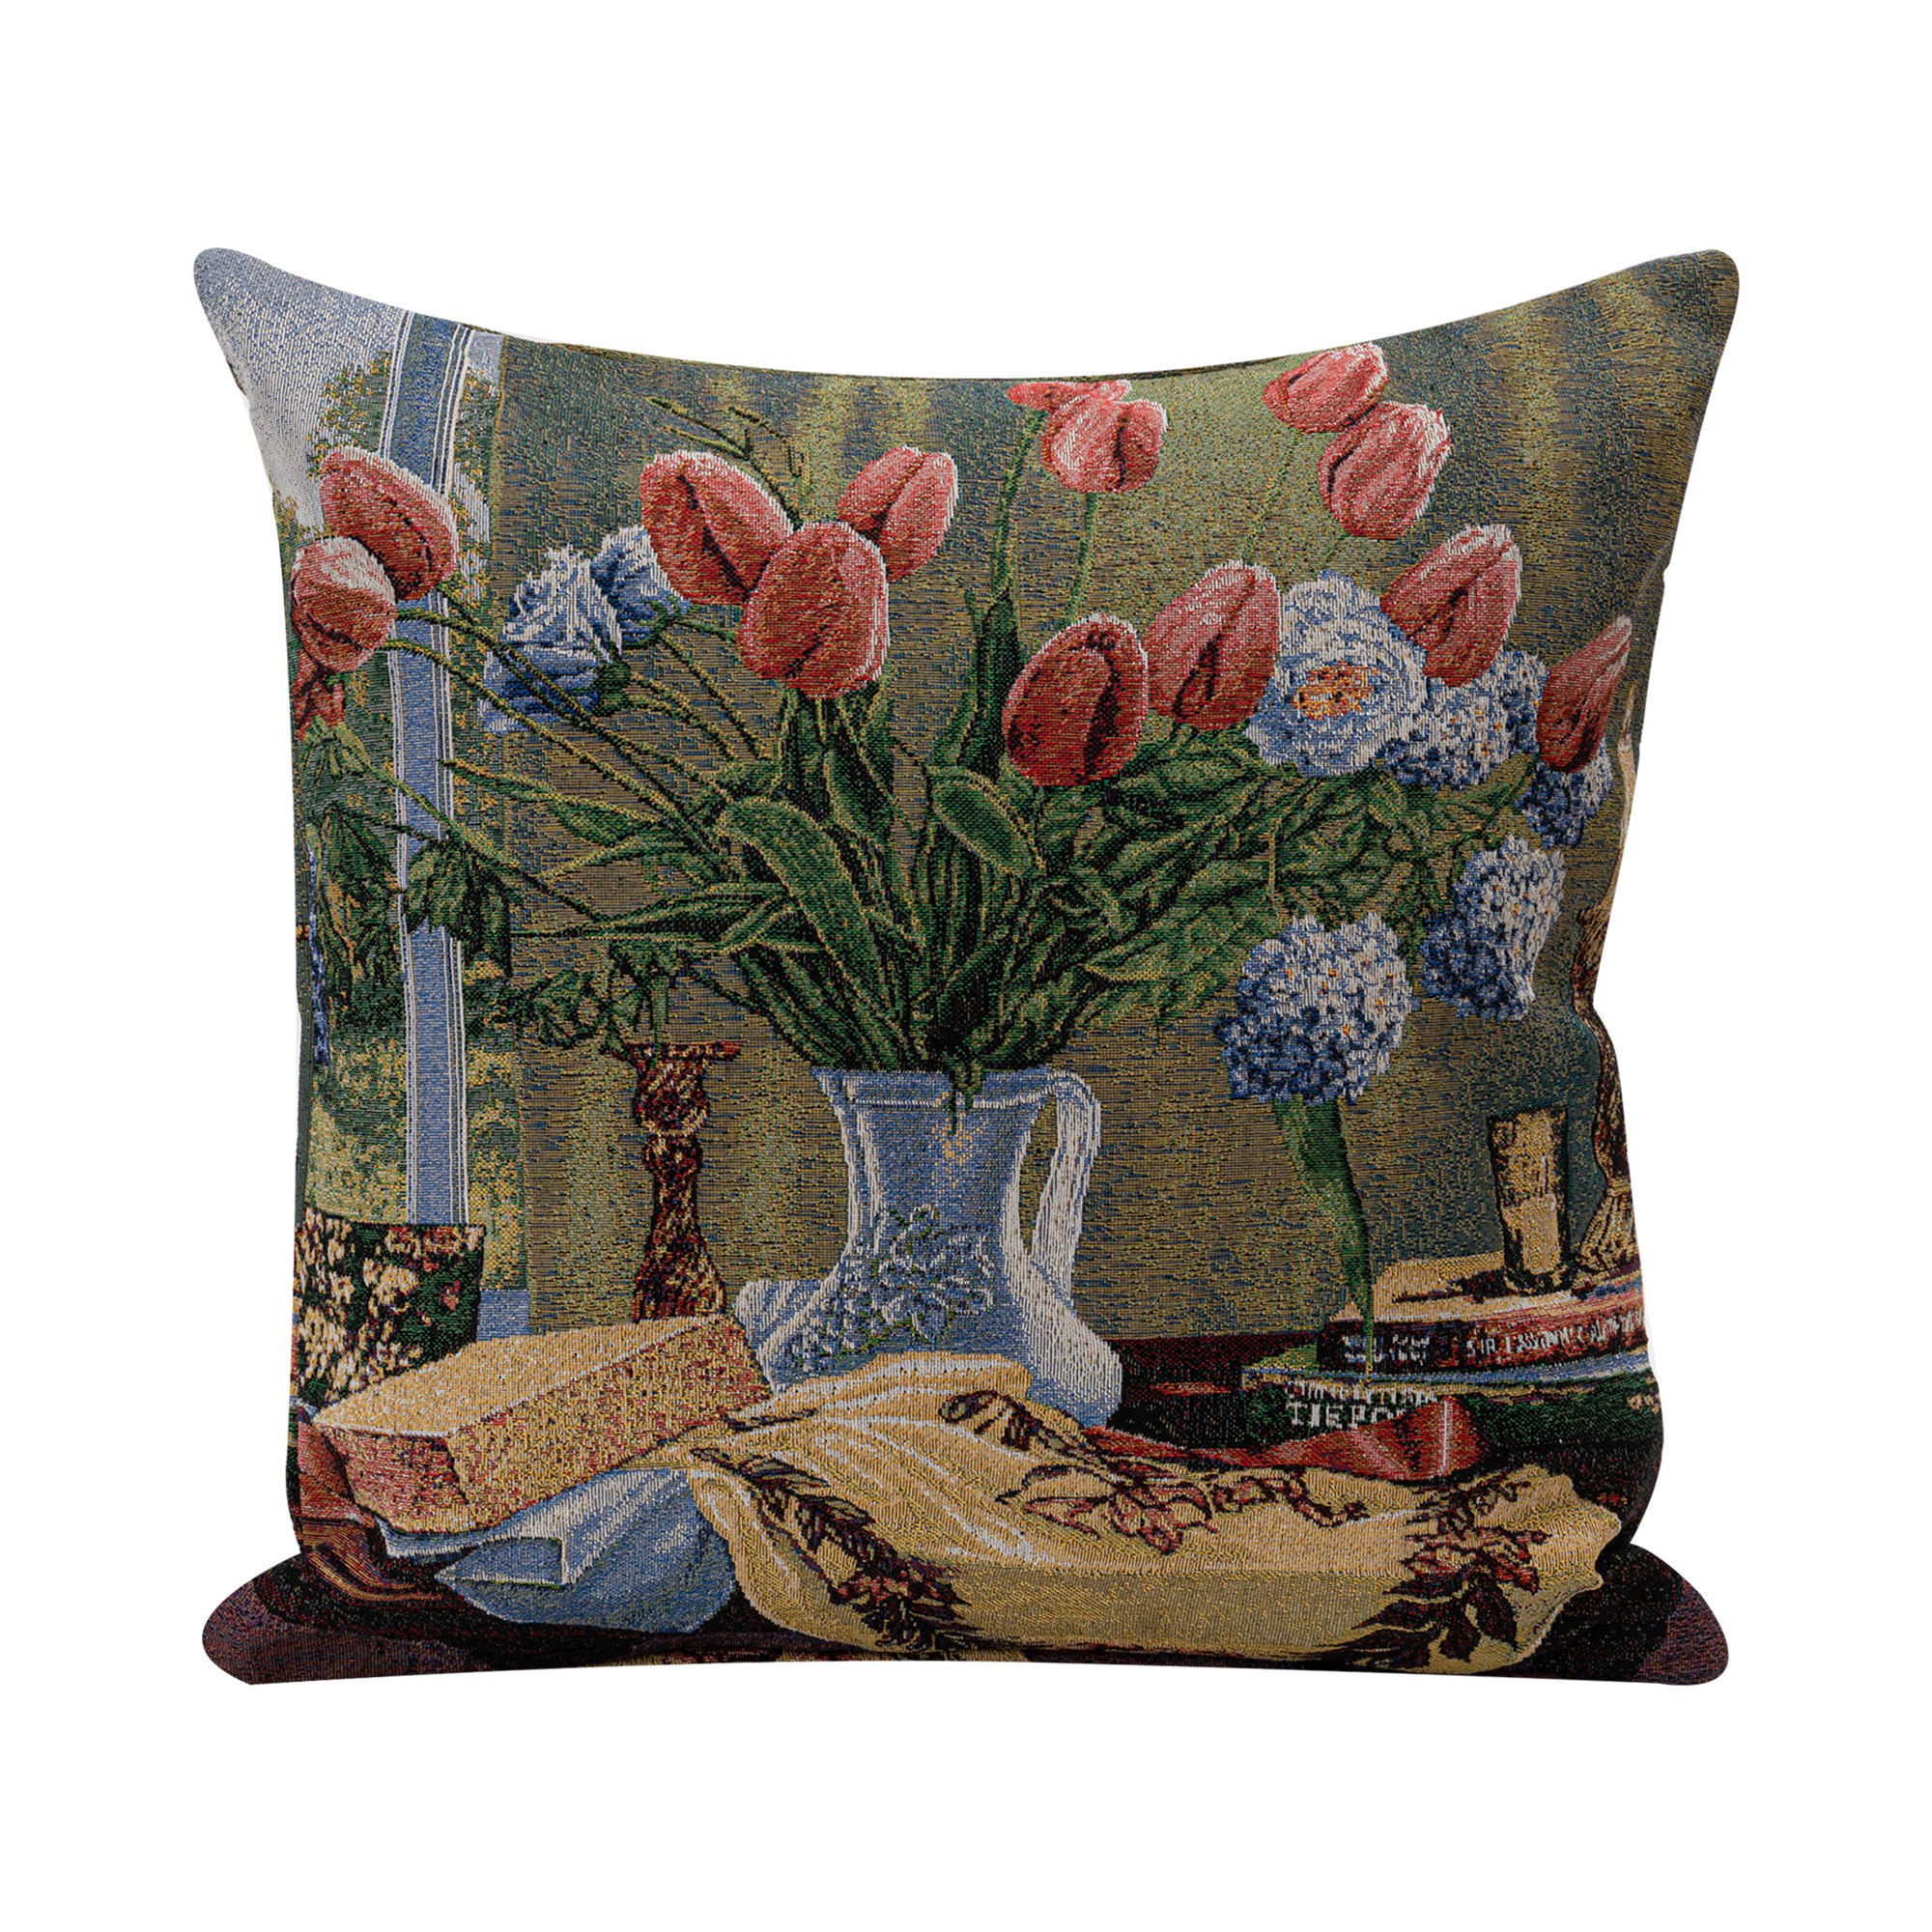 """Tulip Jacquard Woven Cushion Cover/Throw Pillow. Double-Sided Easy Care Polycotton. 45x45cm/18x18""""(Multicolor)"""